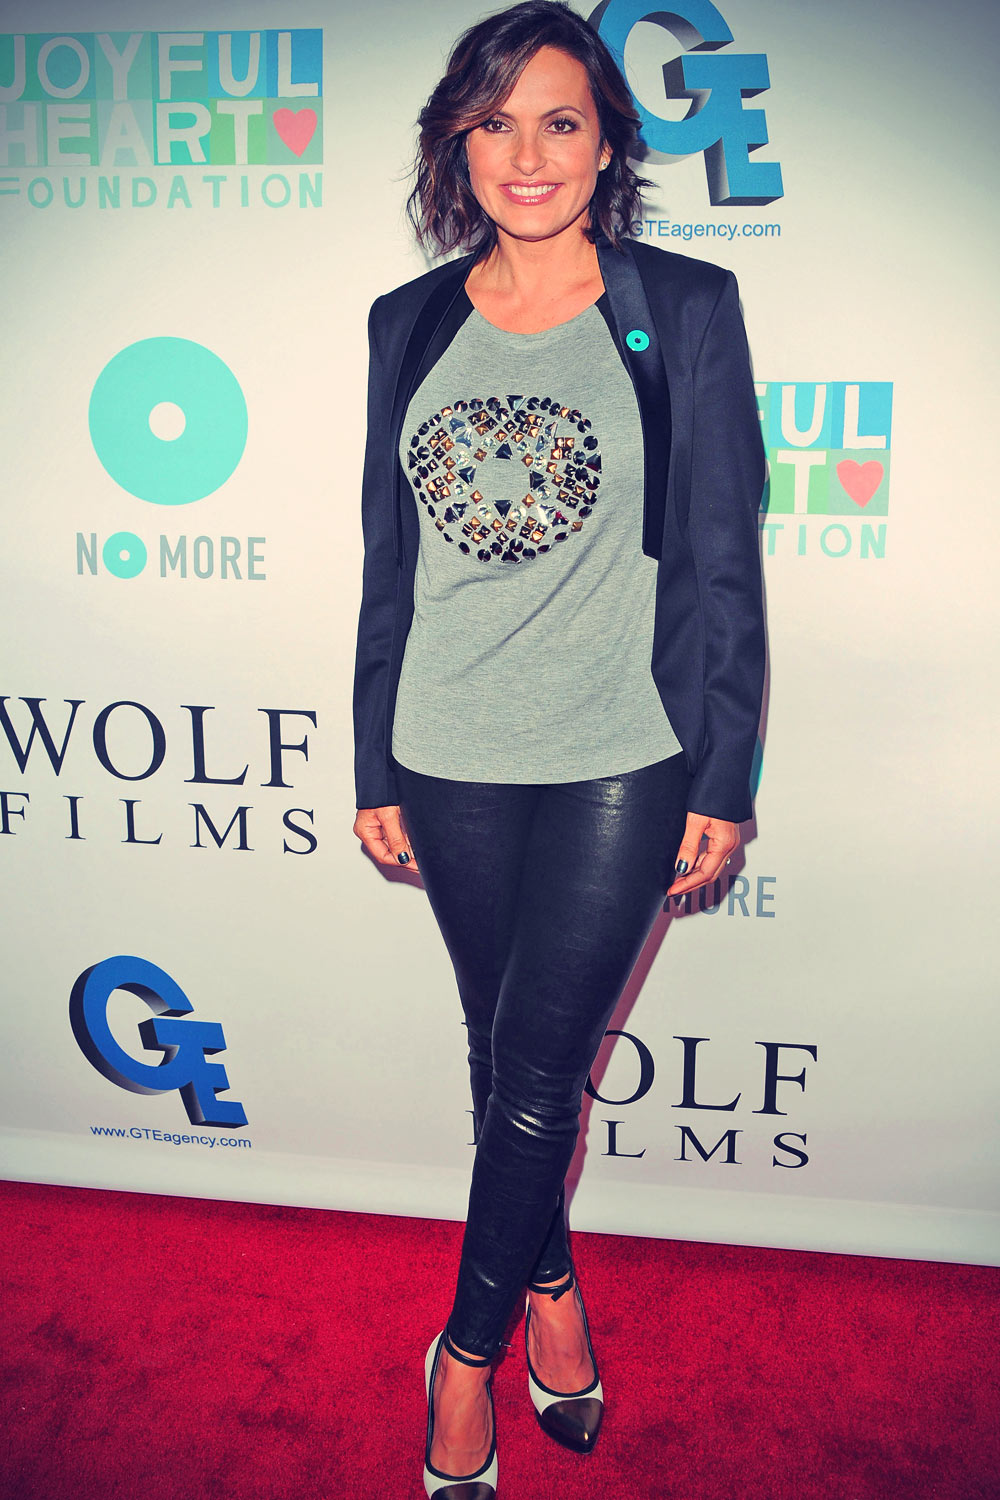 Mariska Hargitay attends the JoyRocks event celebrating the No More PSA Launch